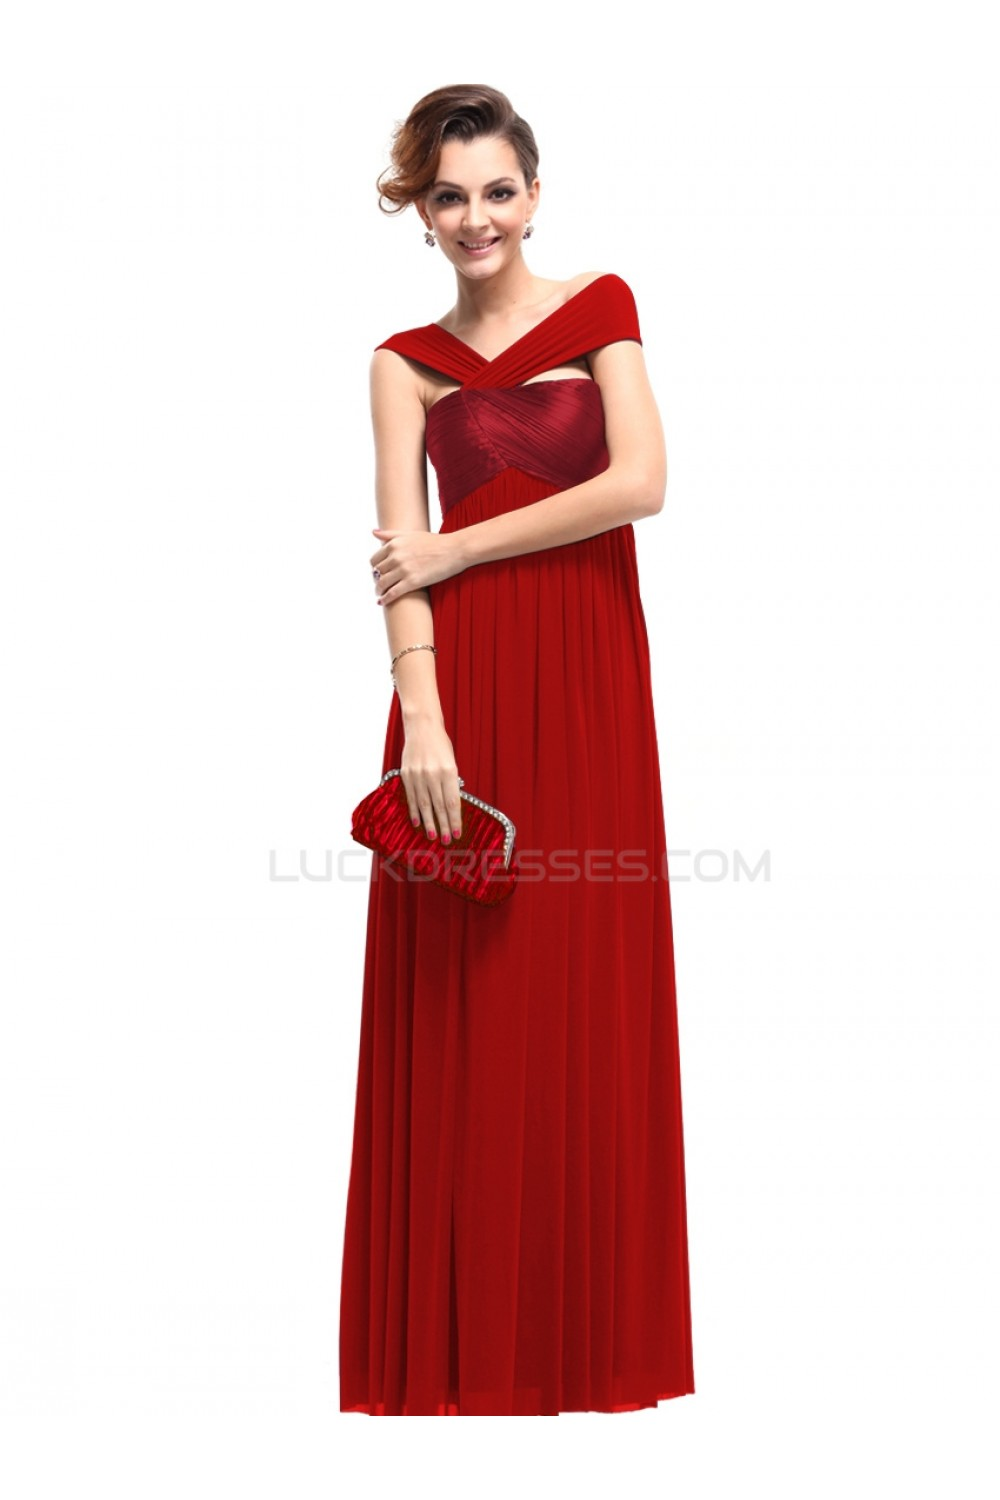 638d32c966c61 Long Red Prom Evening Formal Party Dresses/Maternity Evening ...